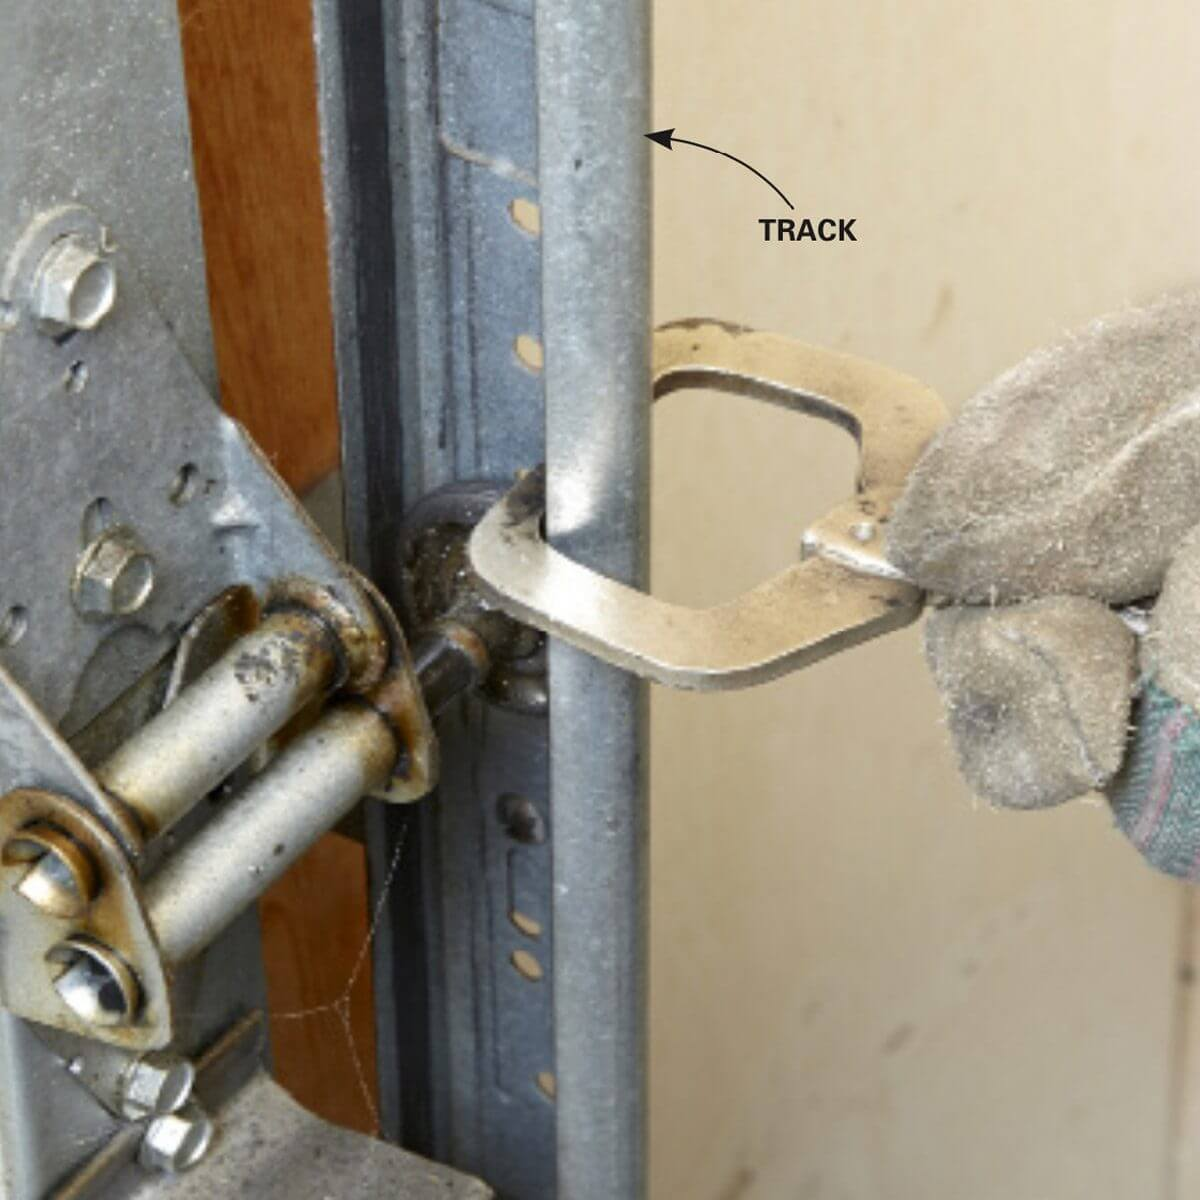 CLAMPING THE DOOR TO THE TRACK - HOW TO INSTALL SINGLE TORSION SPRING